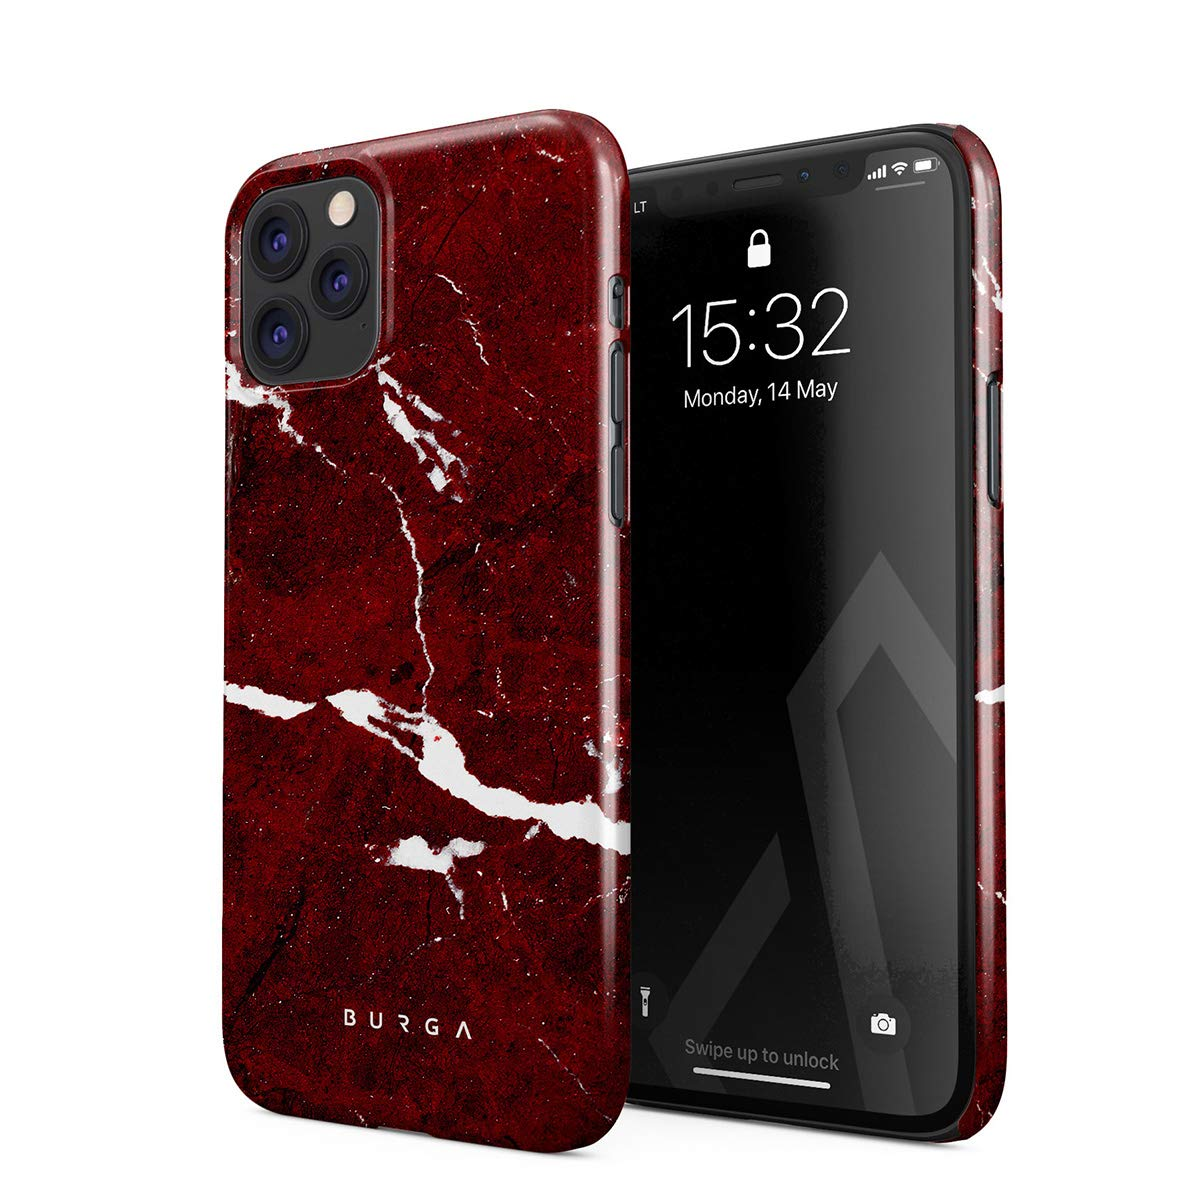 BURGA Phone Case Compatible with iPhone 11 PRO - Iconic Ruby Red Marble Cute Case for Women Thin Design Durable Hard Plastic Protective Case